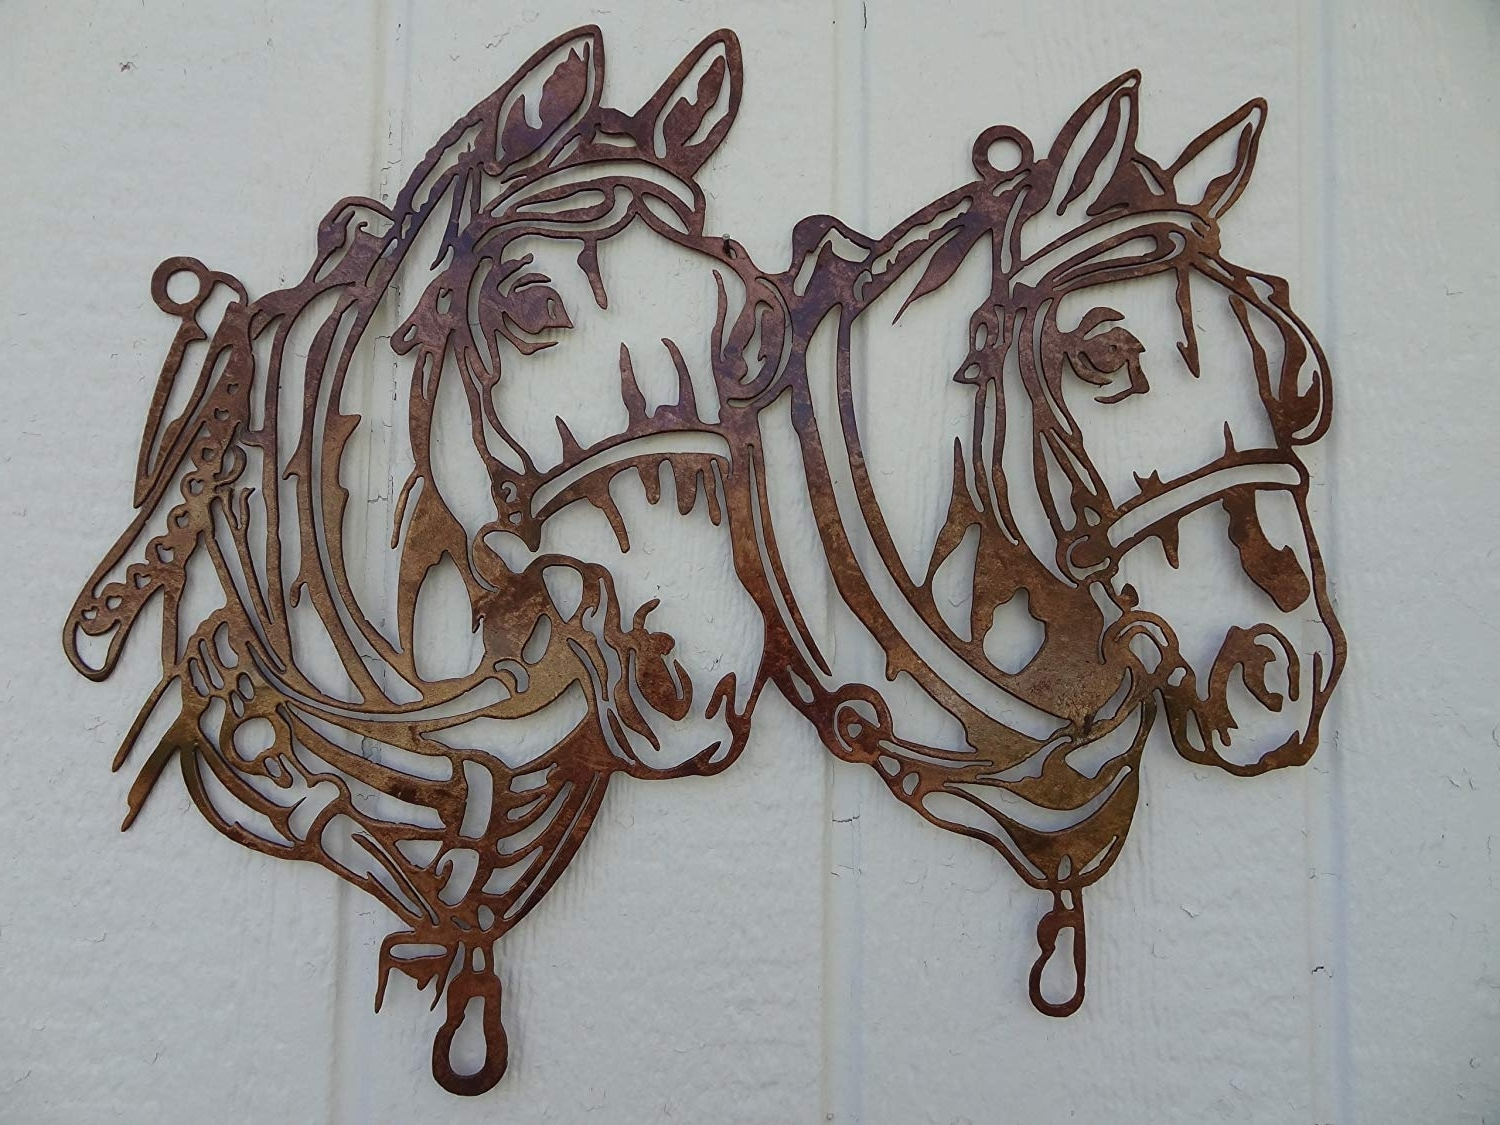 Amazon: Draft Horse Head Metal Wall Art Country Rustic Home Regarding Popular Horse Wall Art (Gallery 9 of 15)